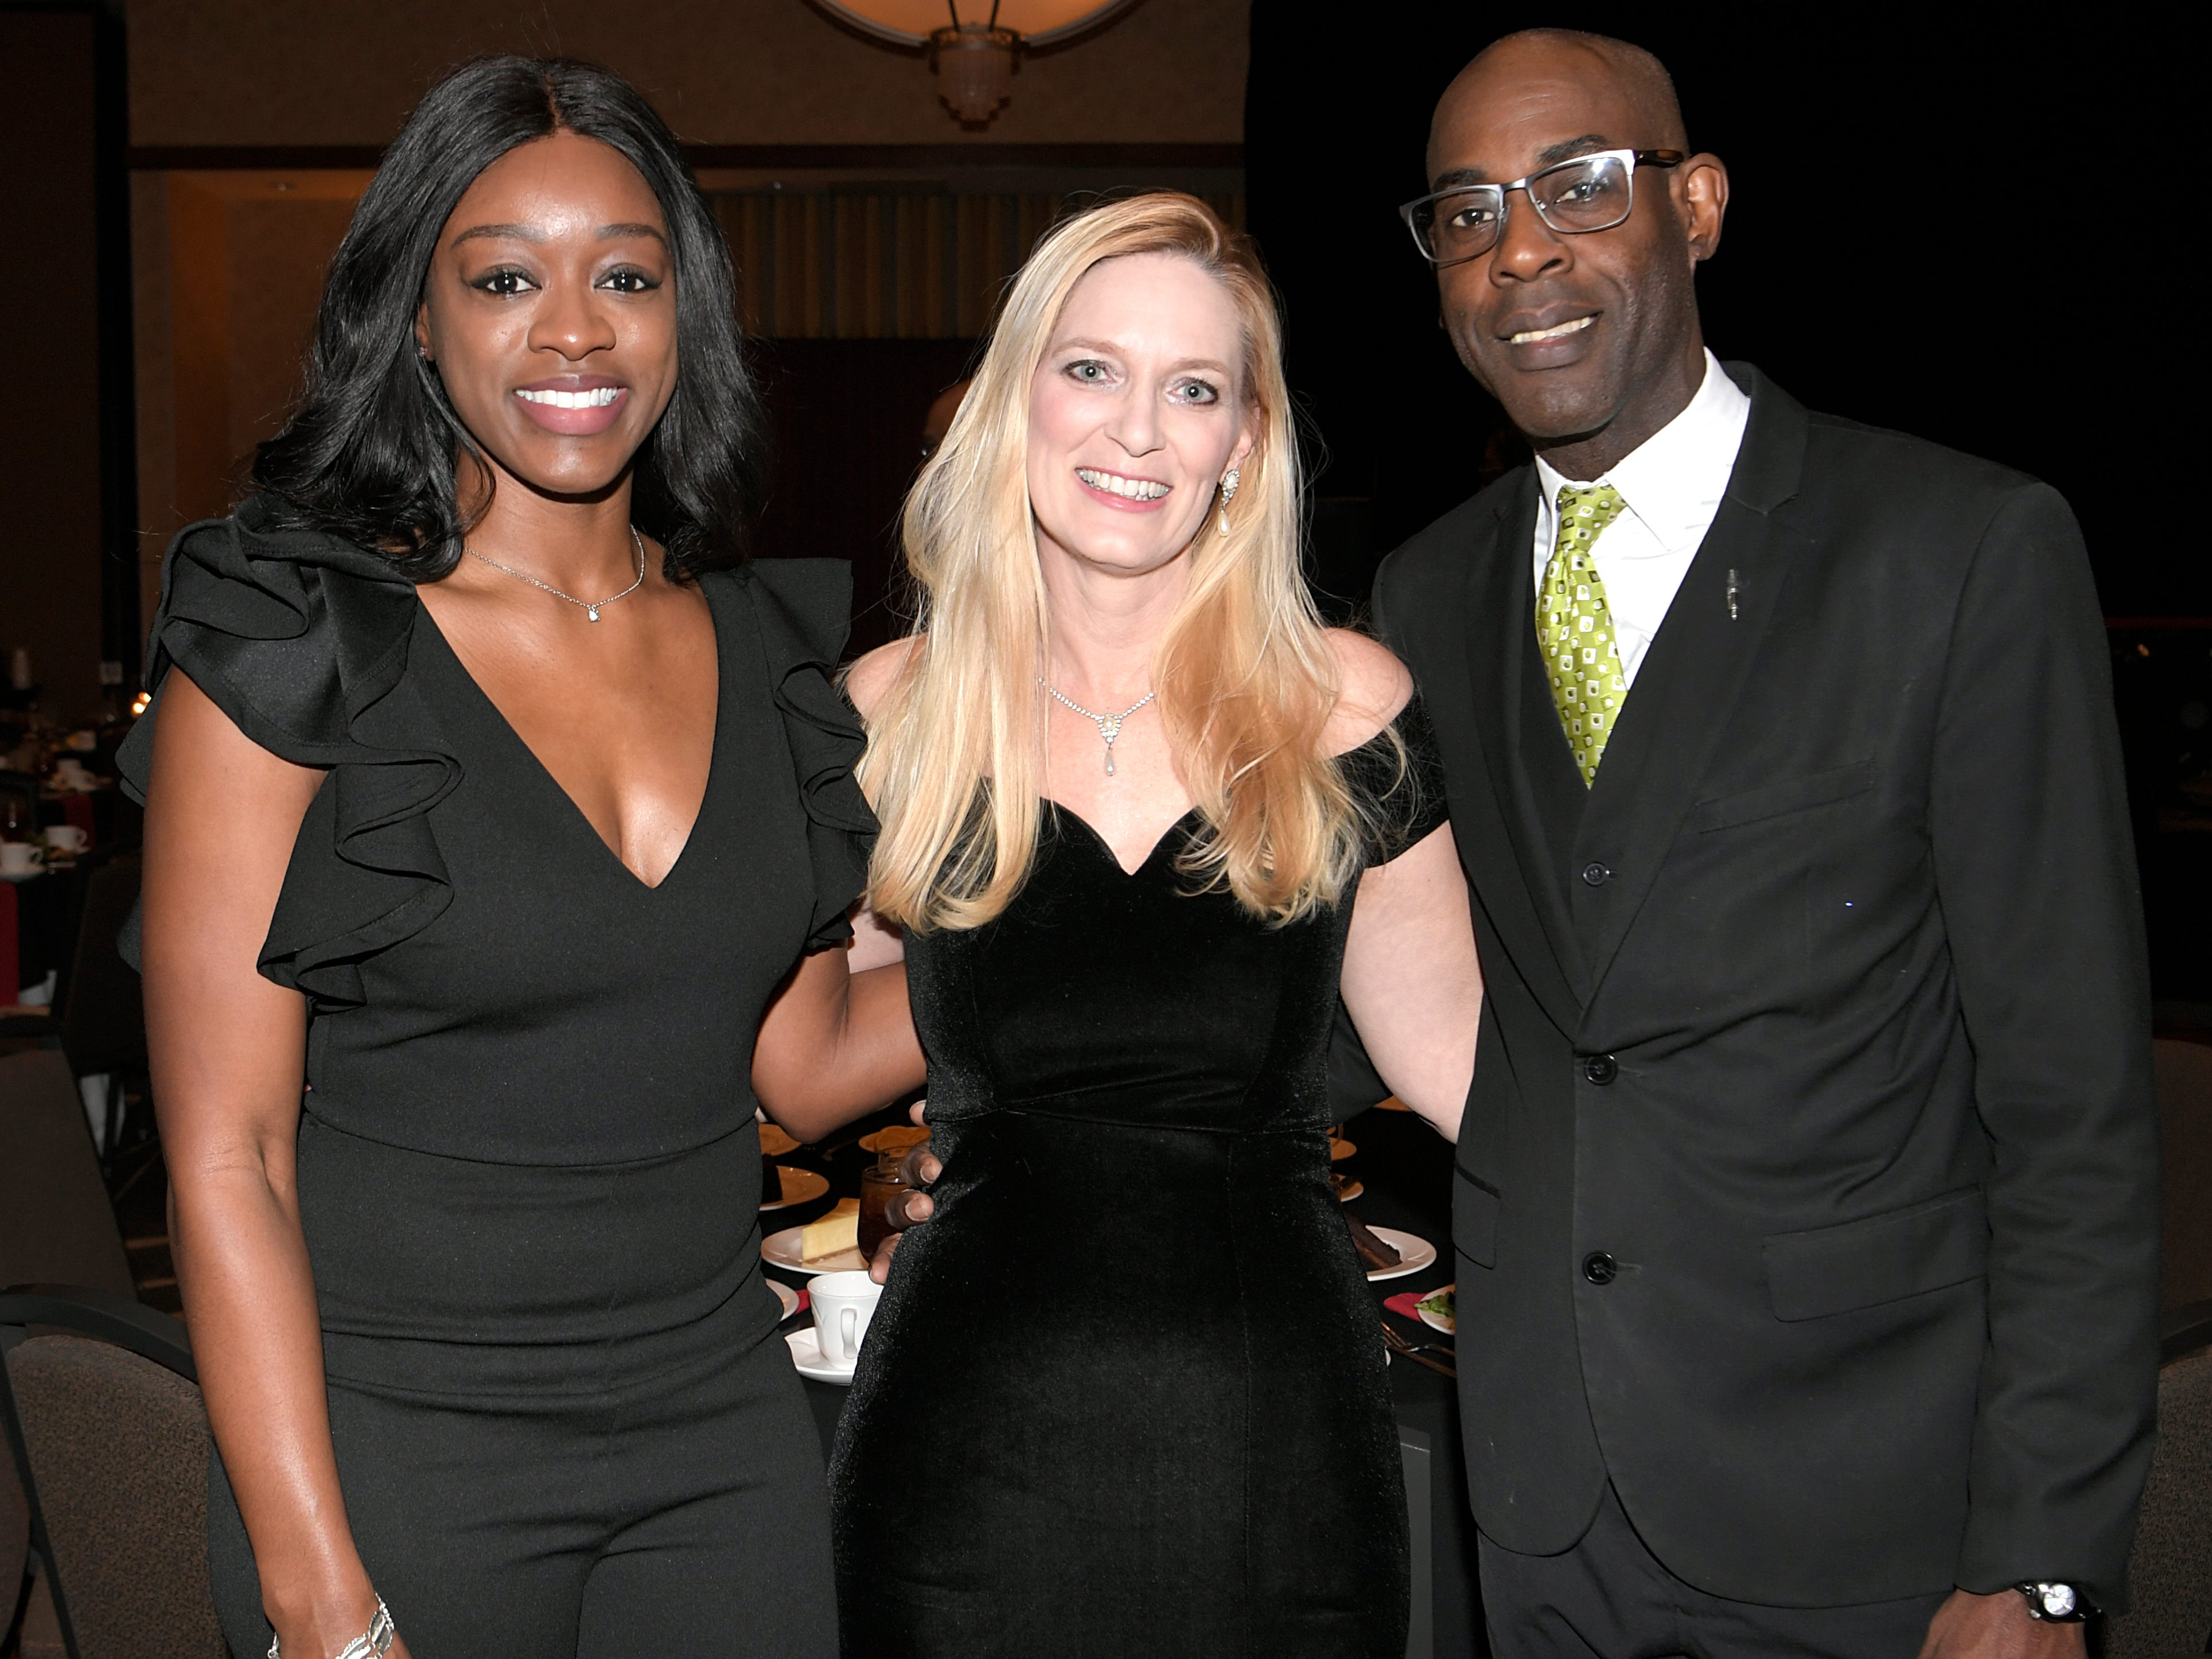 Ariel Campbell, Kristi Sylvester, and Sammy Sylvester at the African American Heritage Society's 18th Annual Black Tie Affair at the Embassy Suites in Franklin on Sat., Feb. 2, 2019.